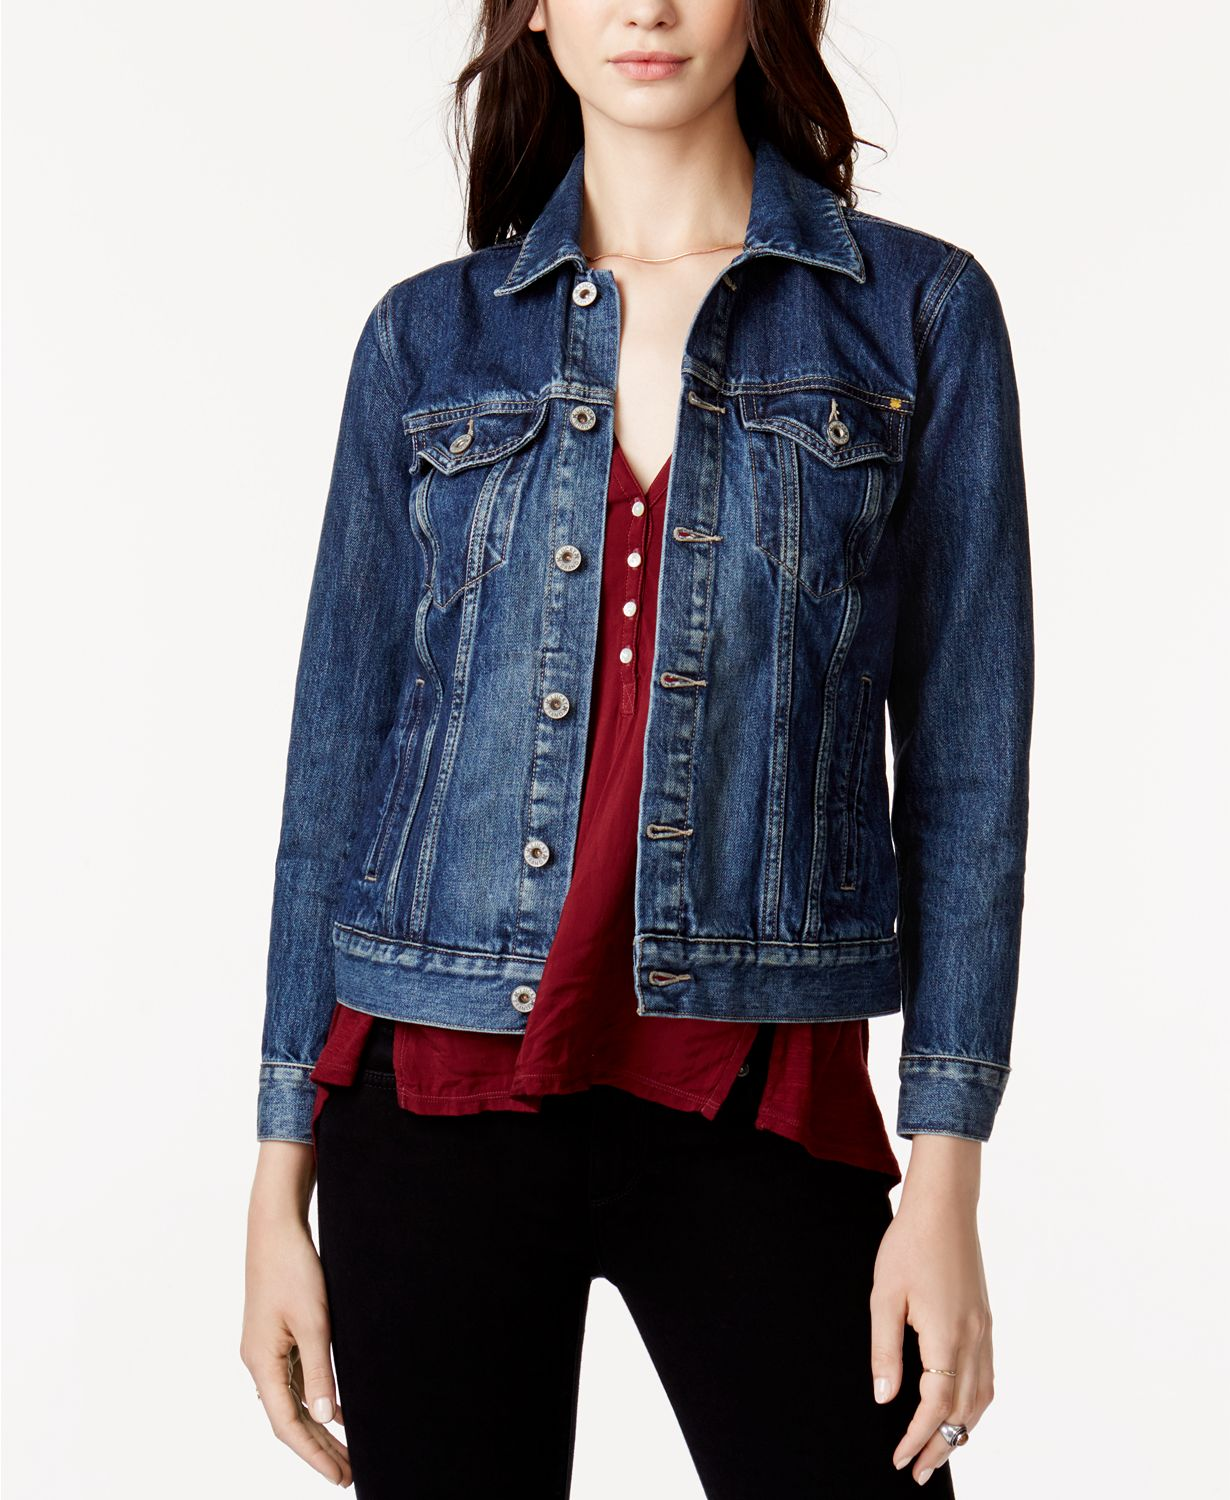 Come discover these Over 50 Fashion: Running Errands Comfy Cute Pieces! Lucky Brand denim jacket to wear over dresses and more! #fashionover50